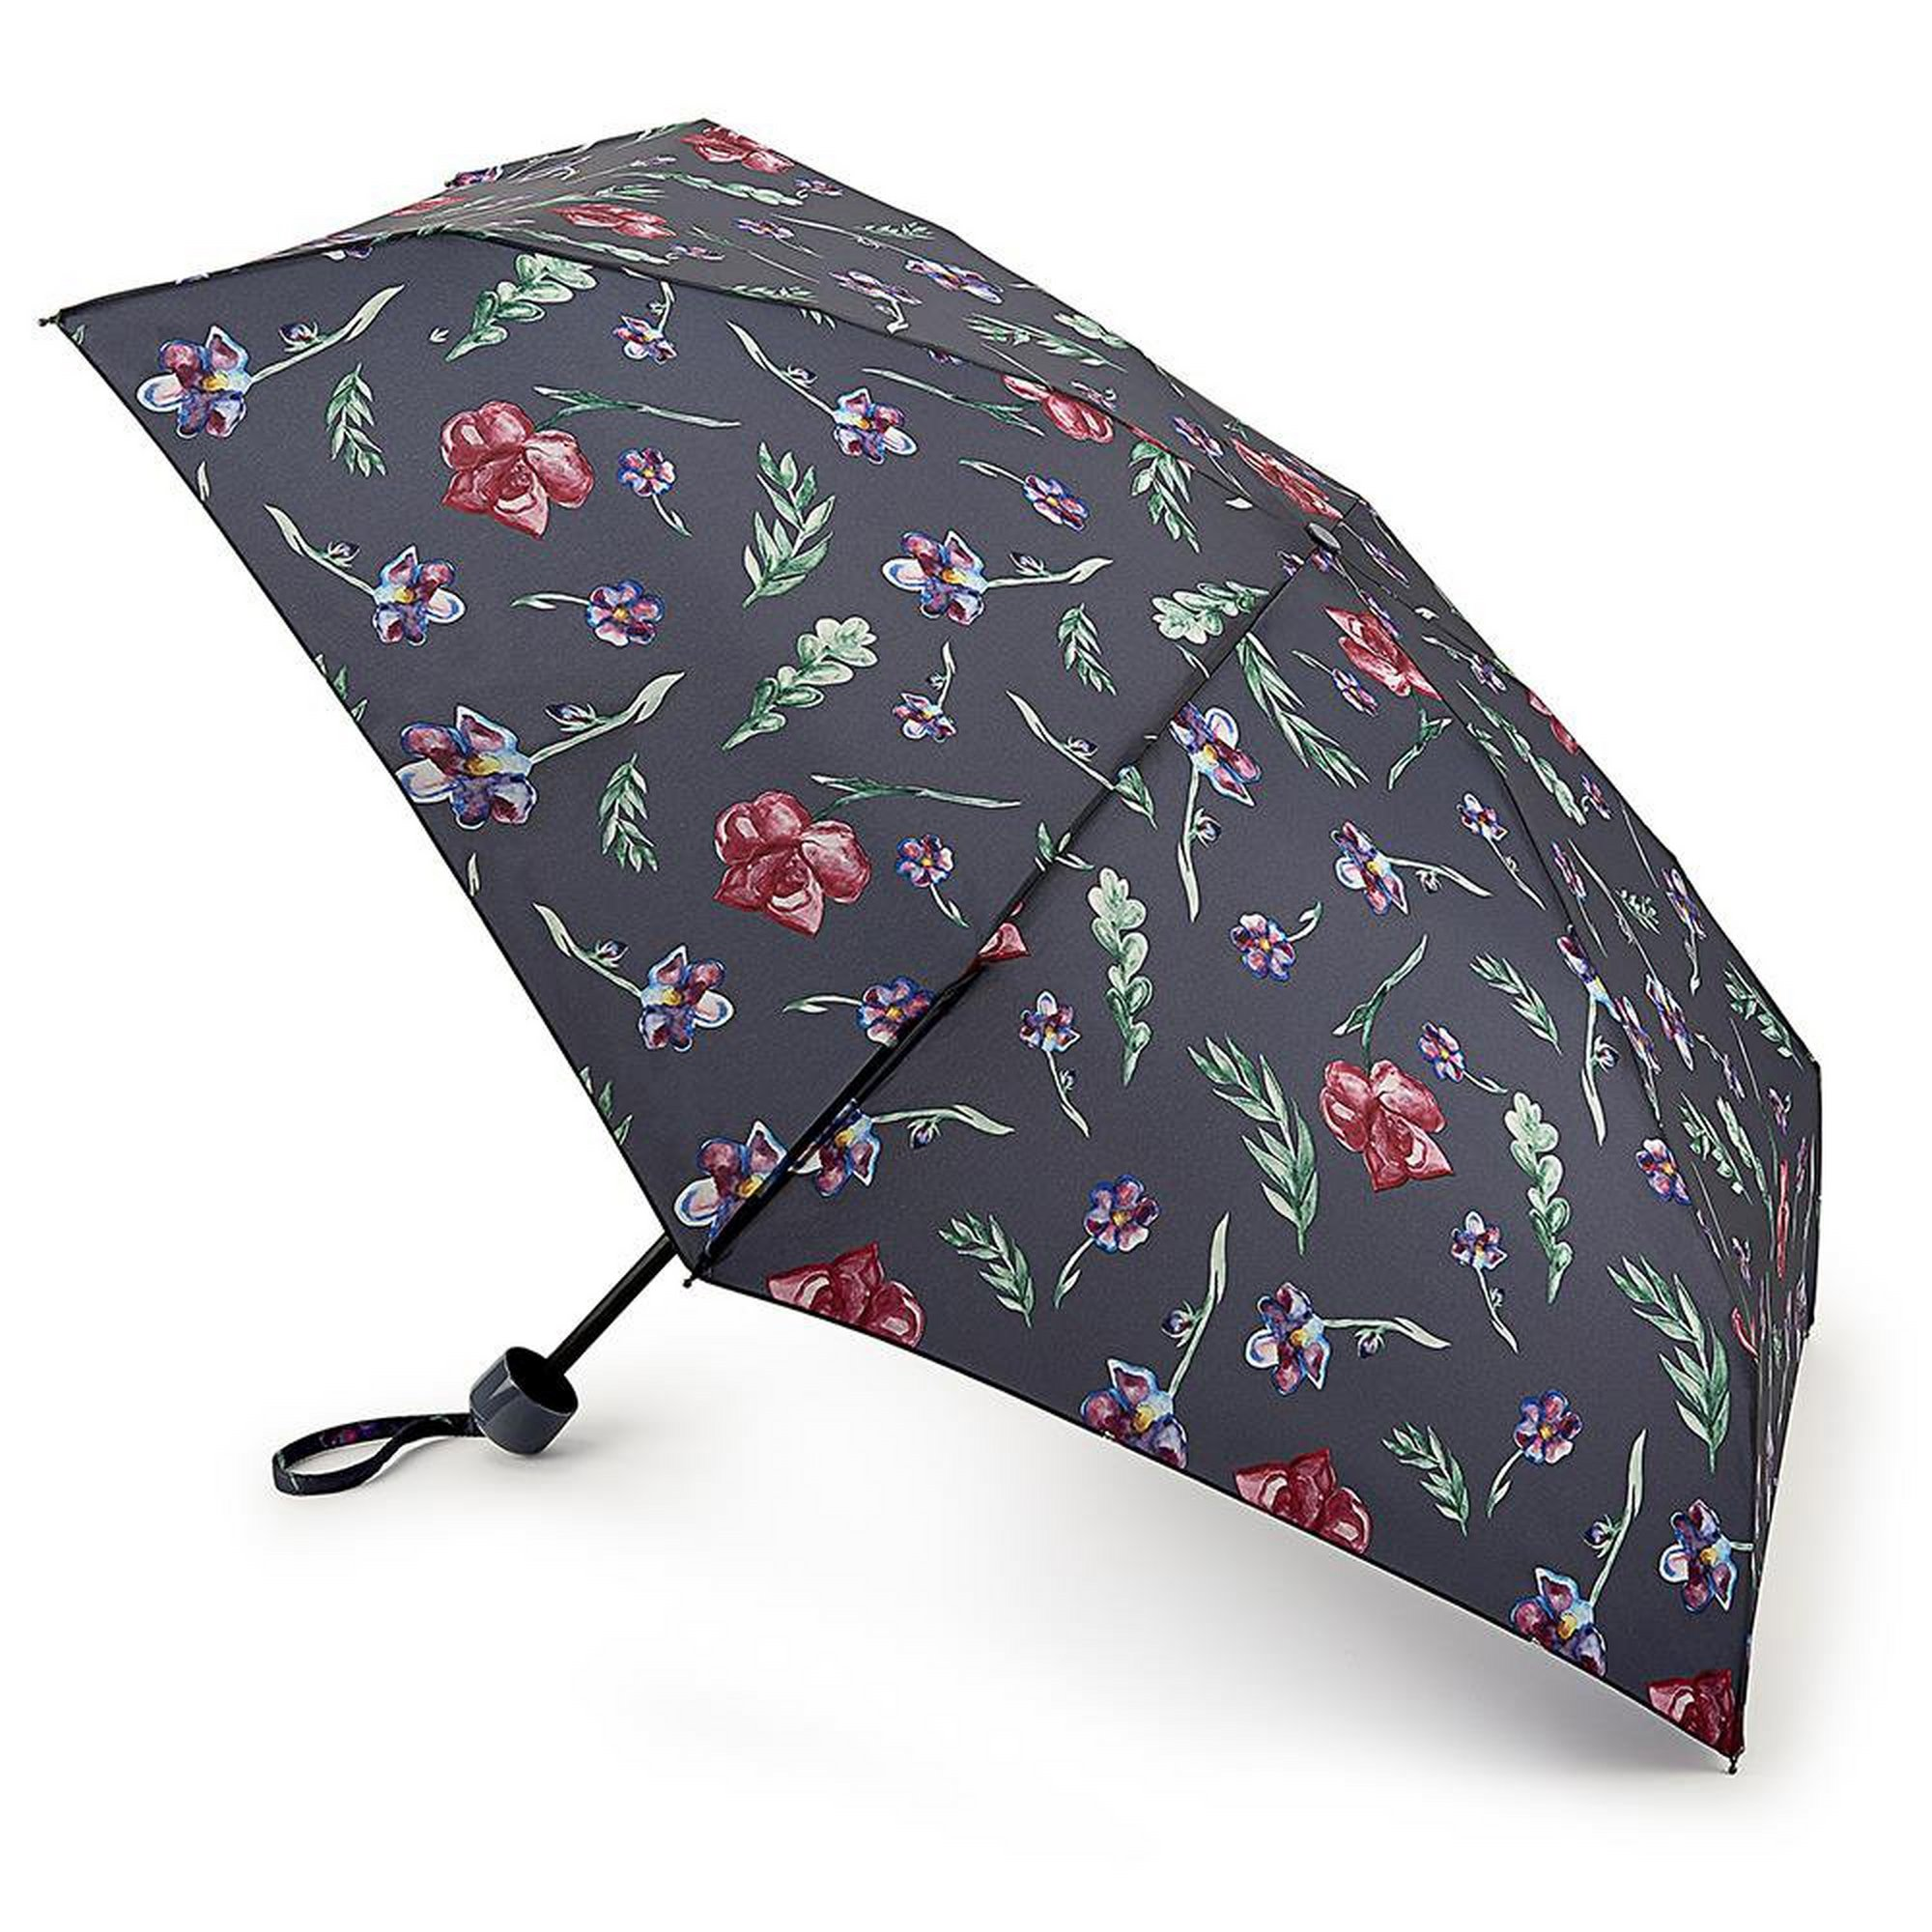 Image of Fulton Nedas Flower SOHO-2 Umbrella